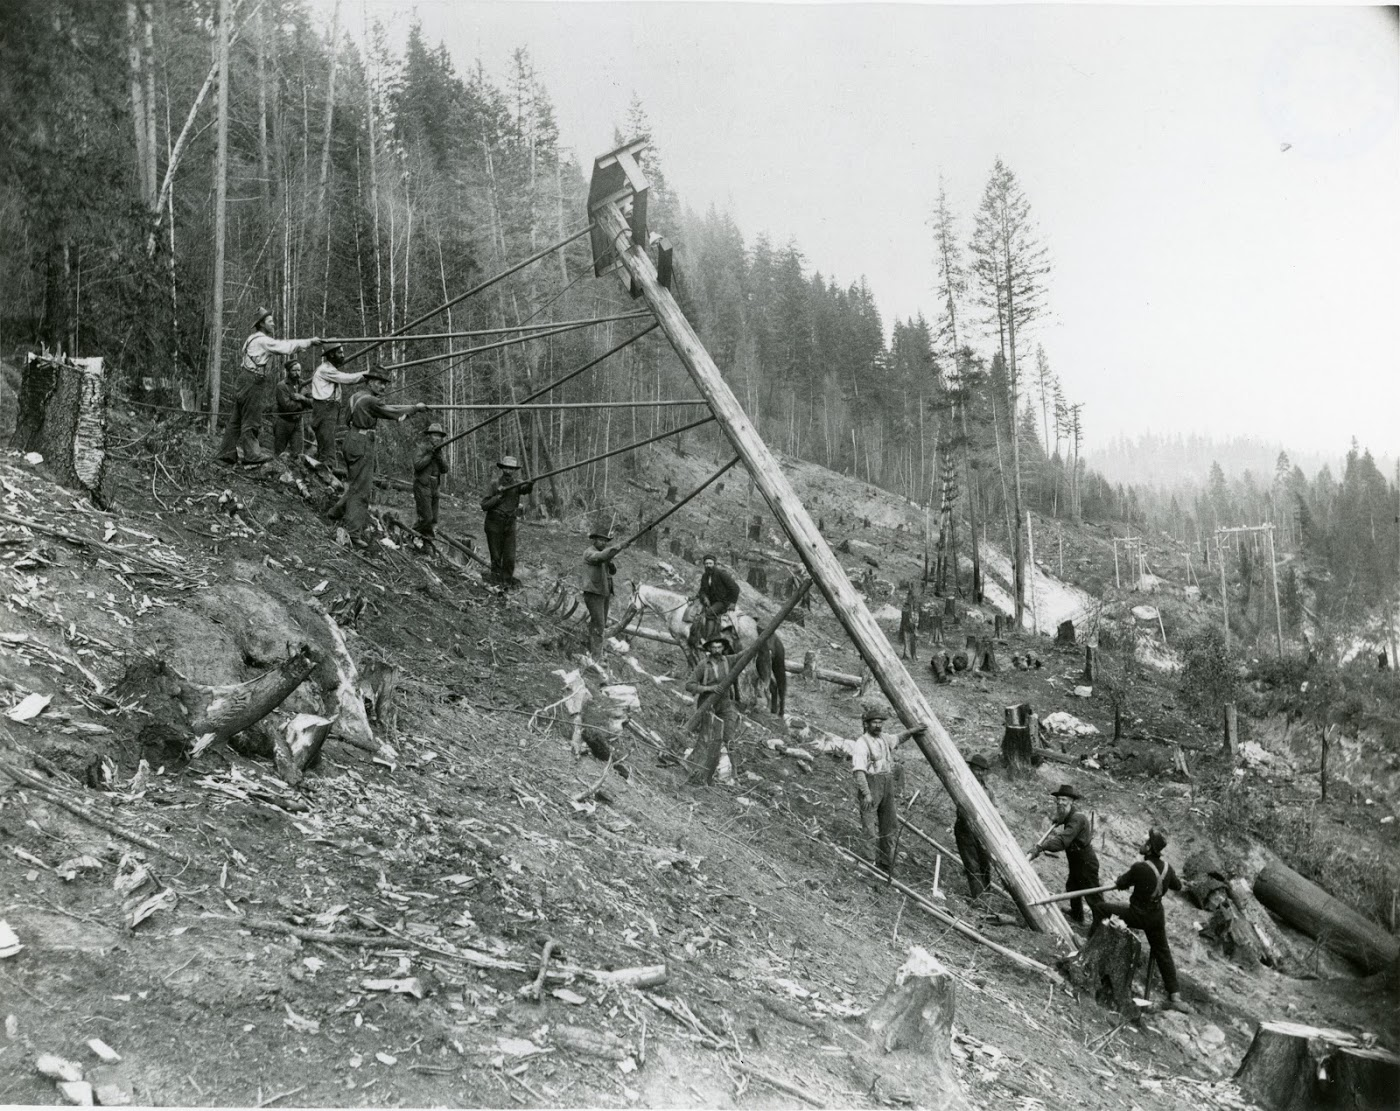 Photo 2318.0047: West Kootenay Power crew raising a power pole for the Bonnington - Rossland line. The crew had to manually cut 50 holes for the poles every 1 km - that's 2,575 holes in total!